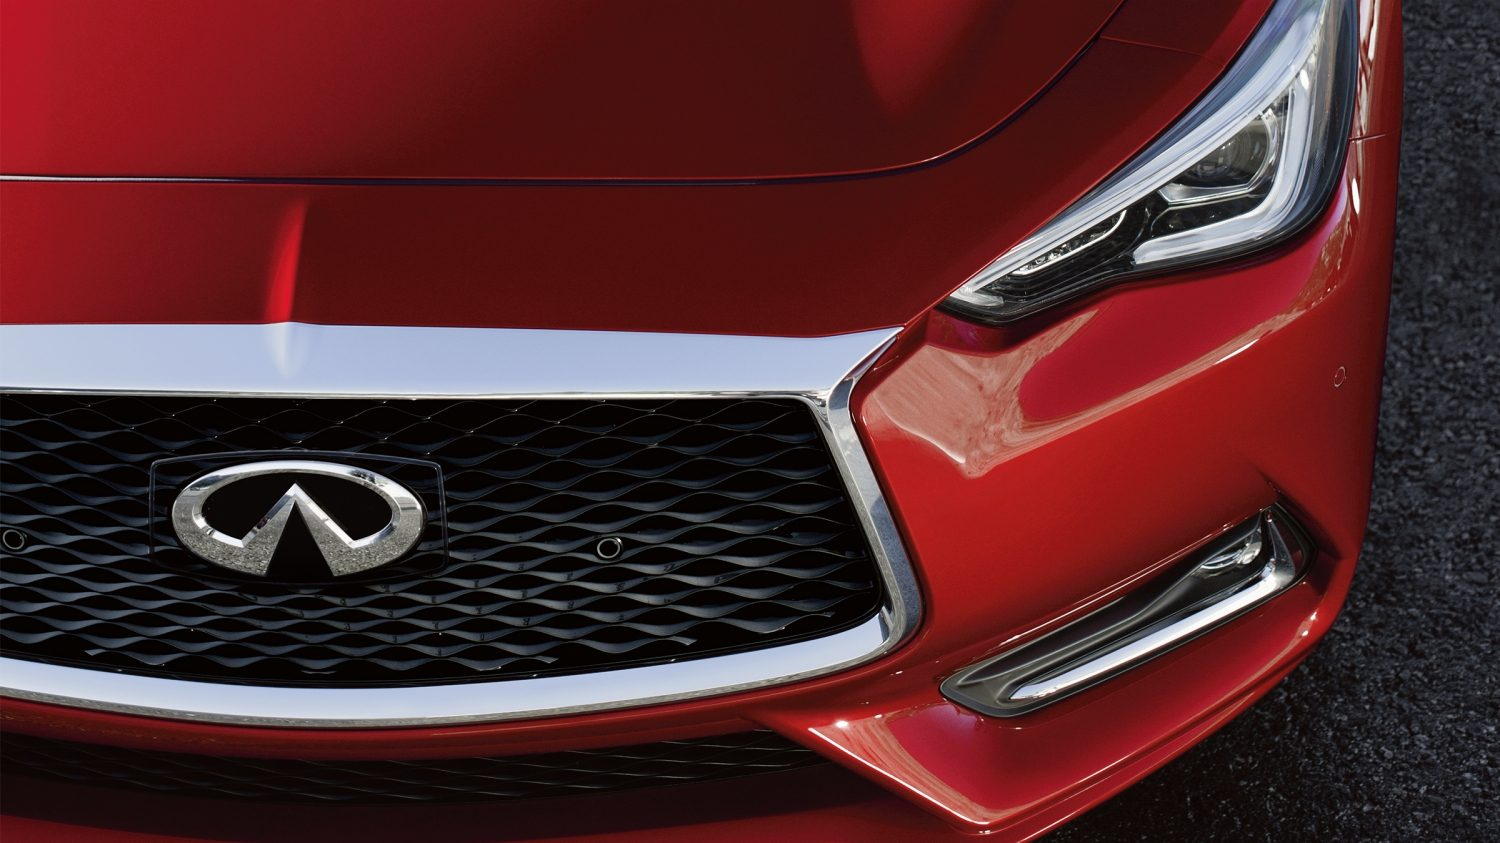 INFINITI Q60 in red front of vehicle hood